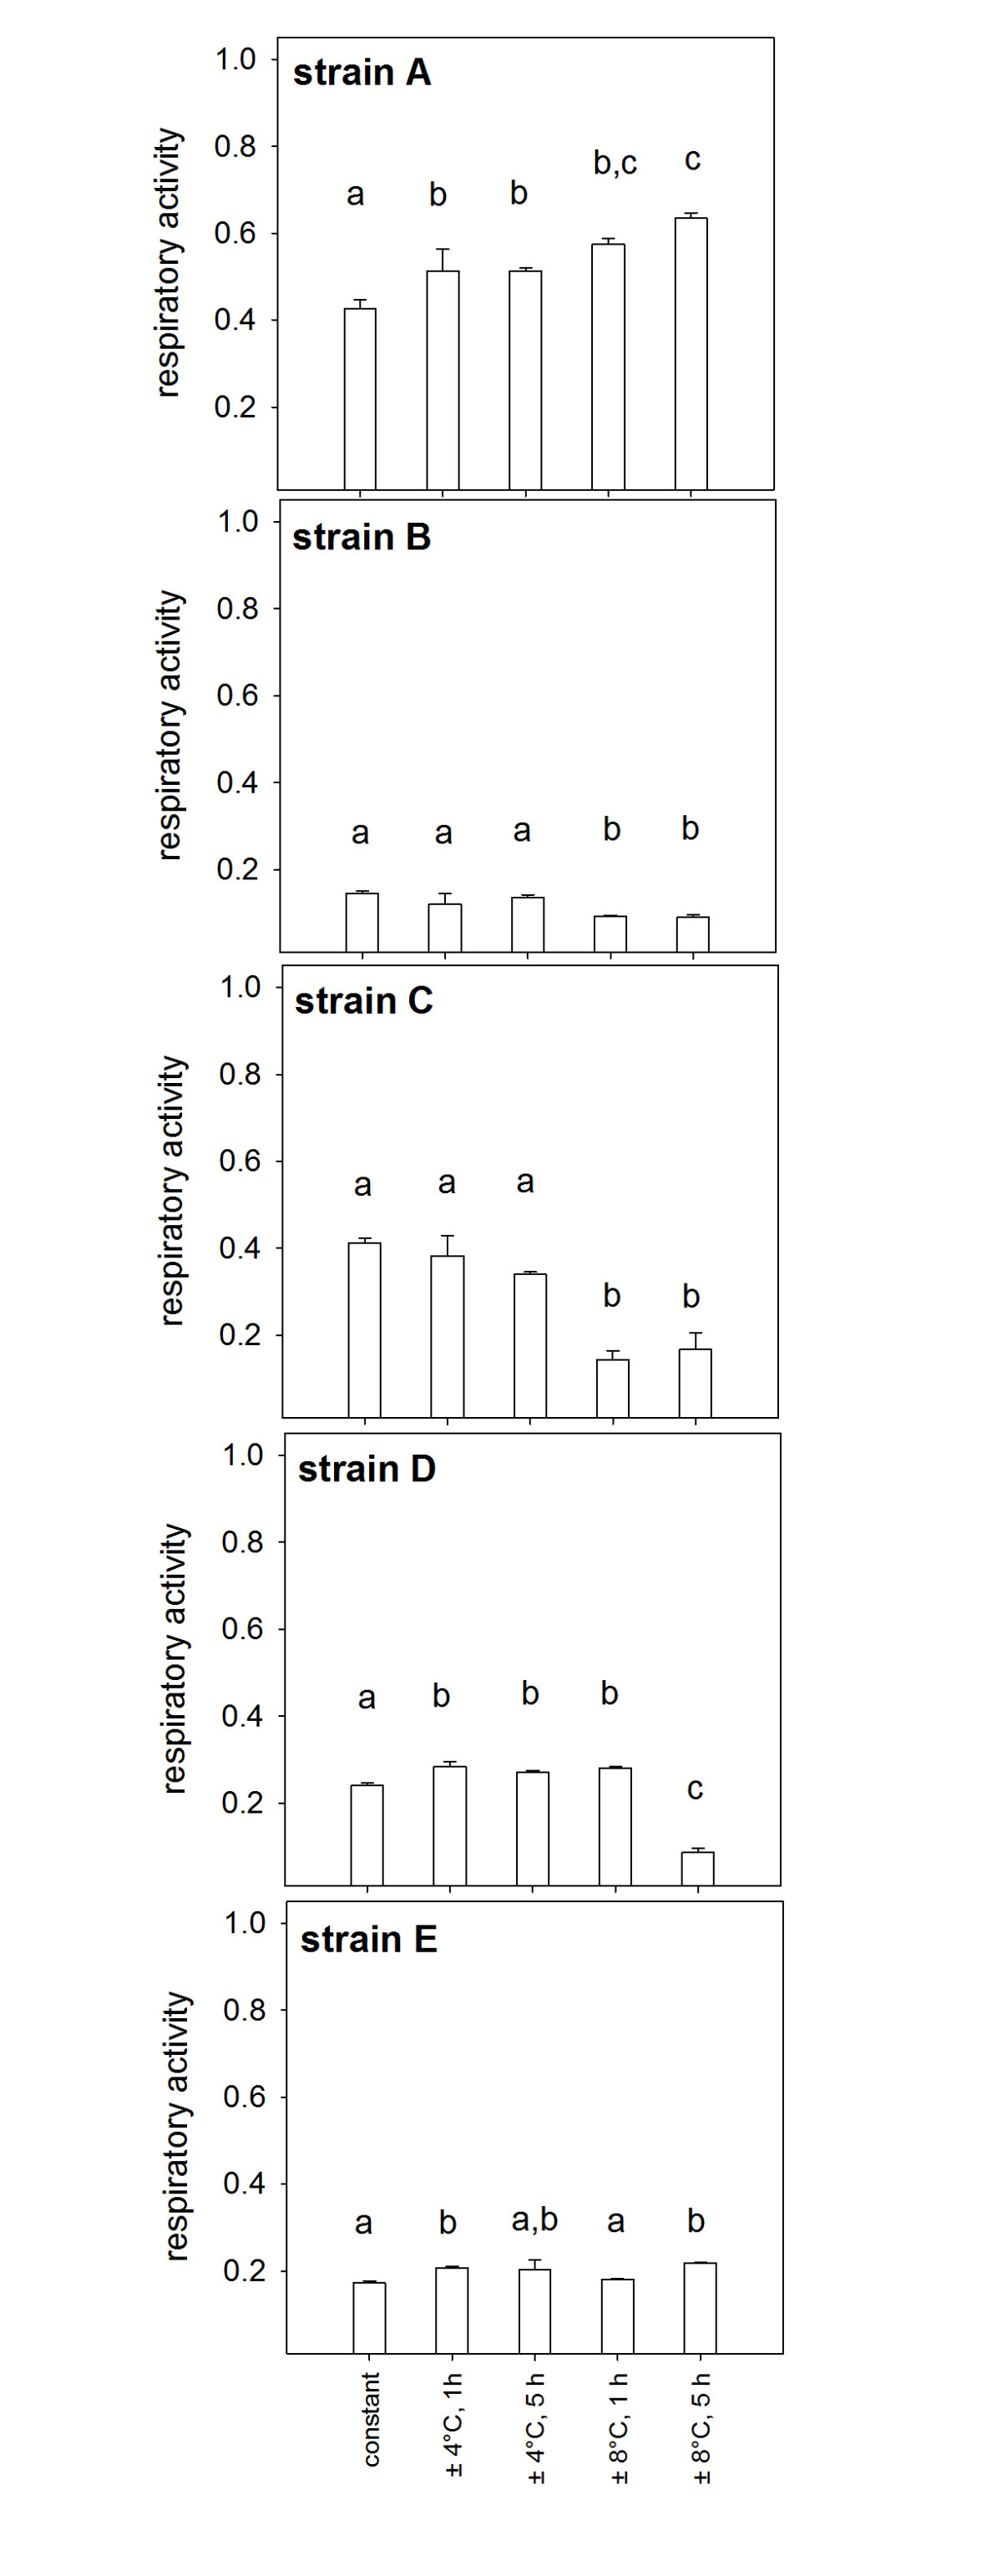 https://static-content.springer.com/image/art%3A10.1186%2F1472-6785-12-14/MediaObjects/12898_2012_Article_202_Fig6_HTML.jpg